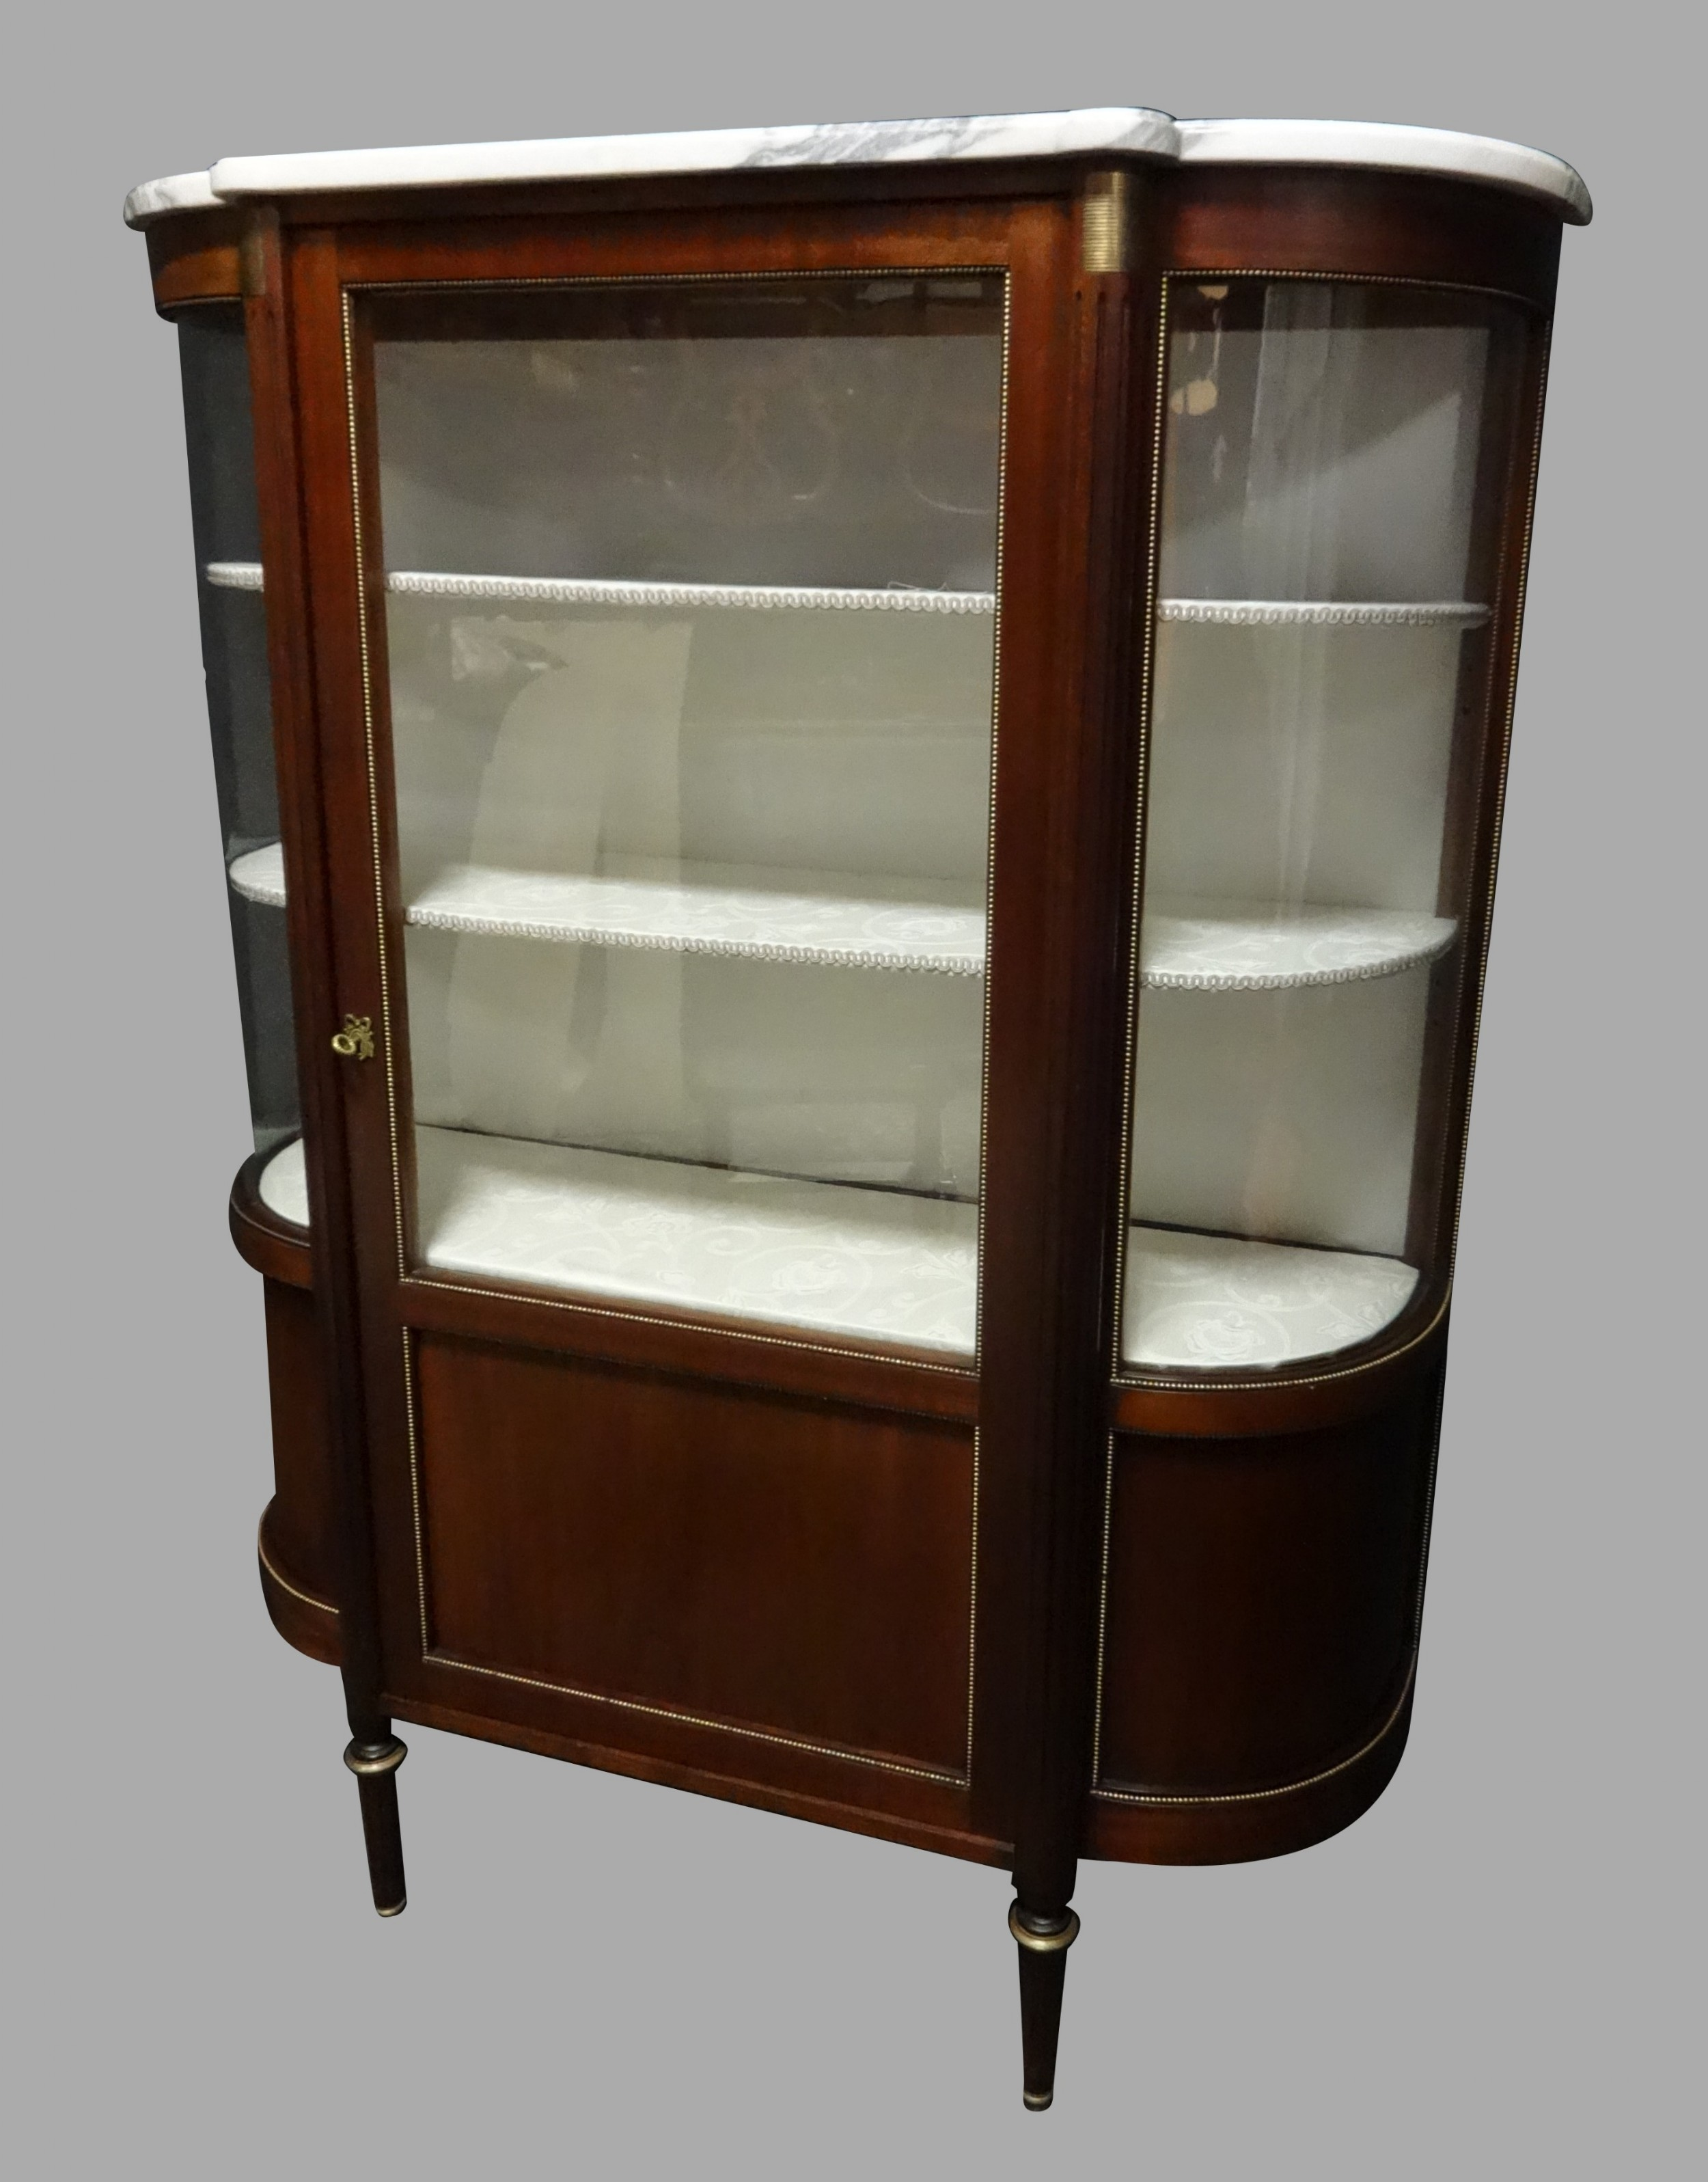 very elegant brass mounted mahogany display cabinet